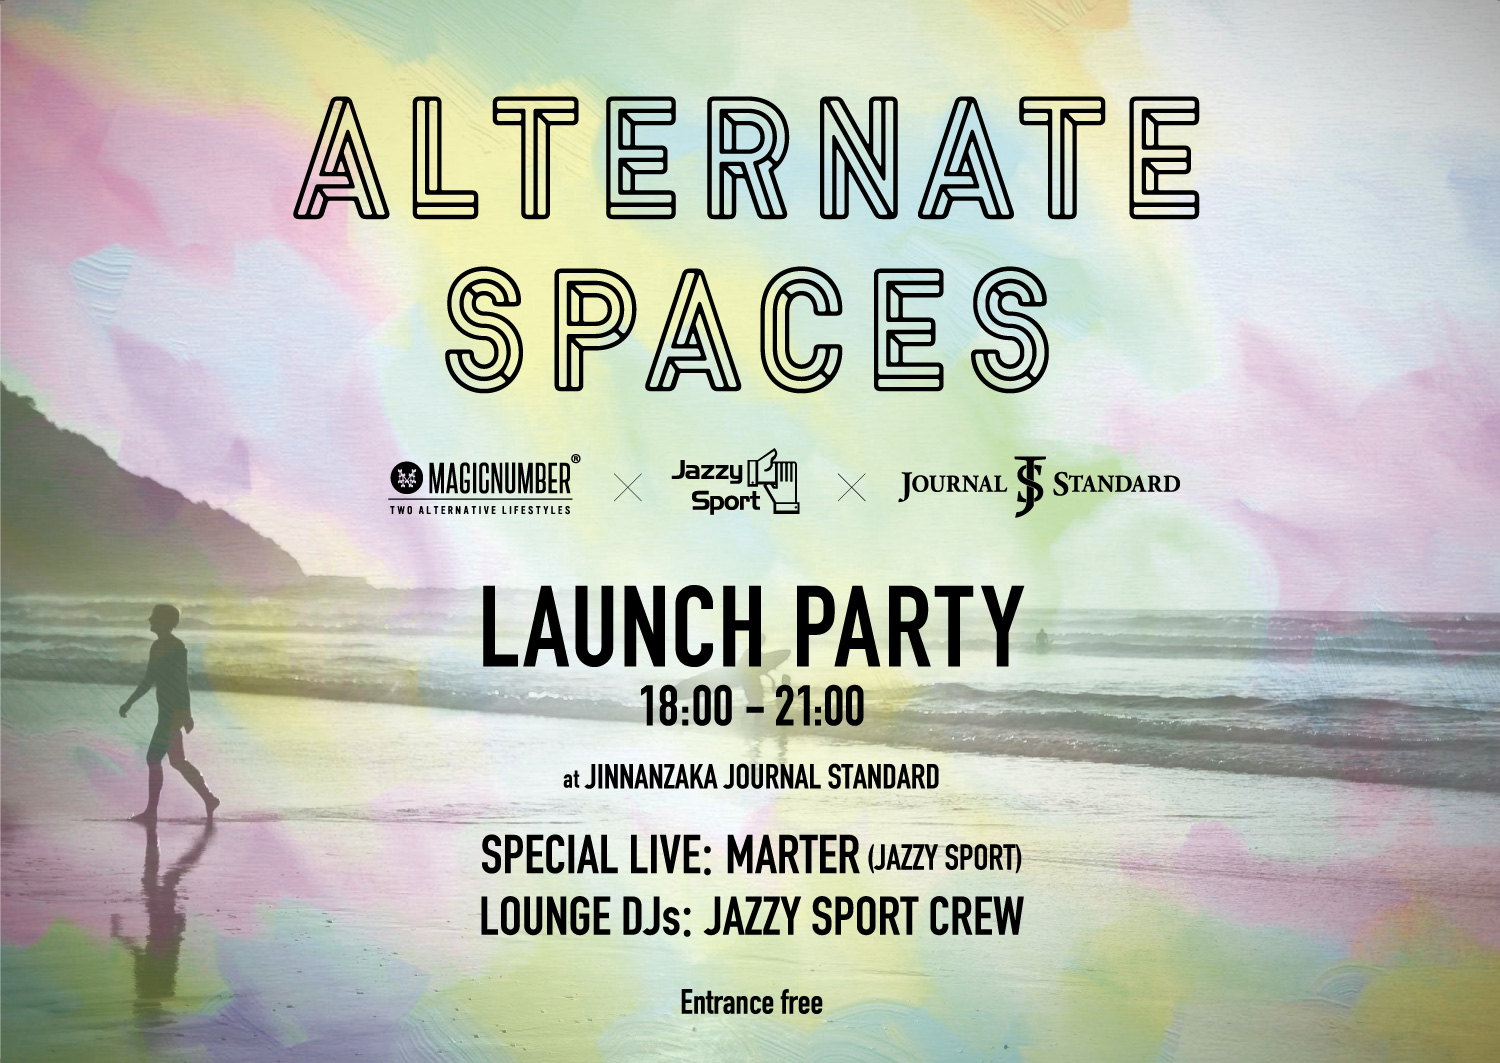 Alternate Spaces 2019/4/26開催